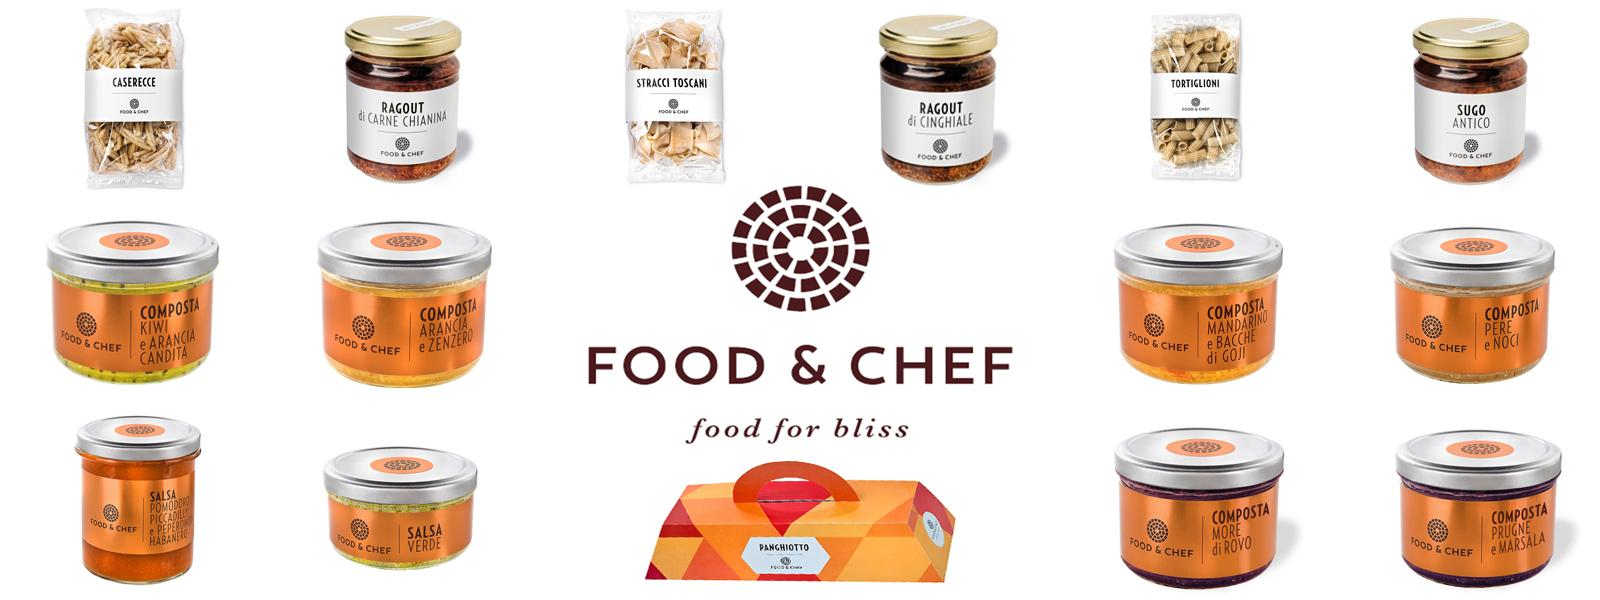 Food and Chef: Food for Bliss prodotti alimentari gourmet arezzo